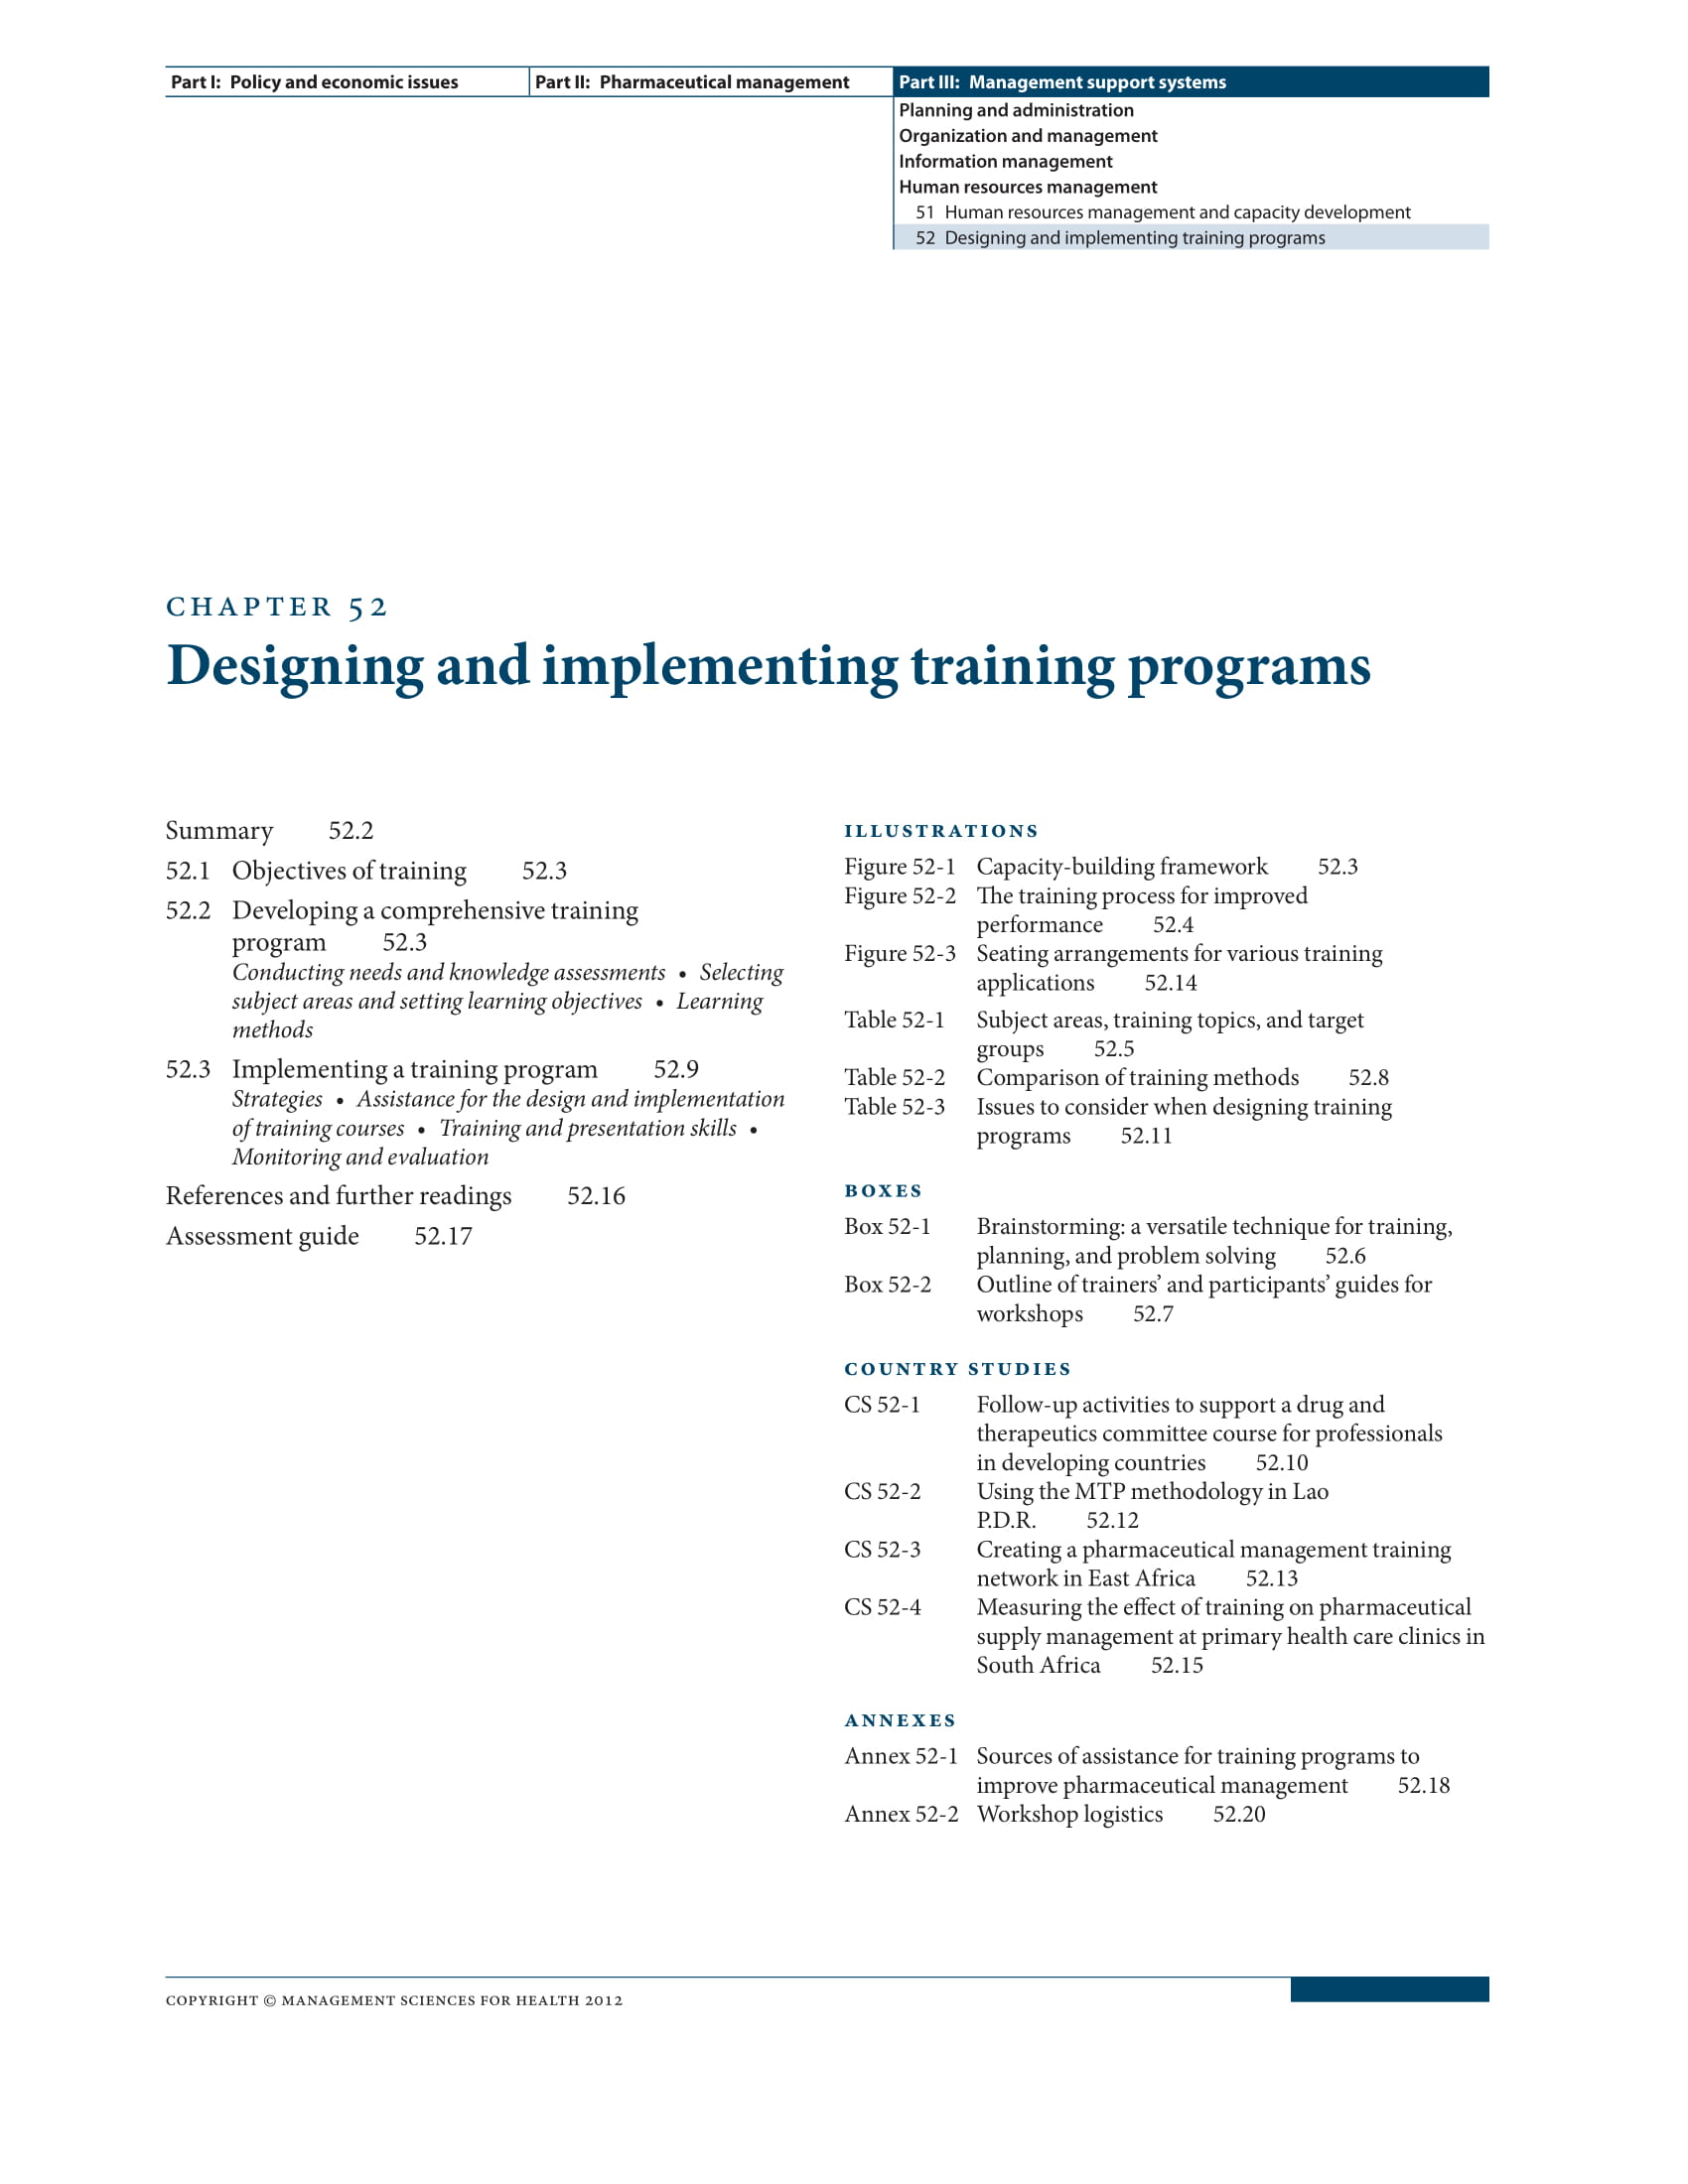 training project plan design and implementation guides example 01